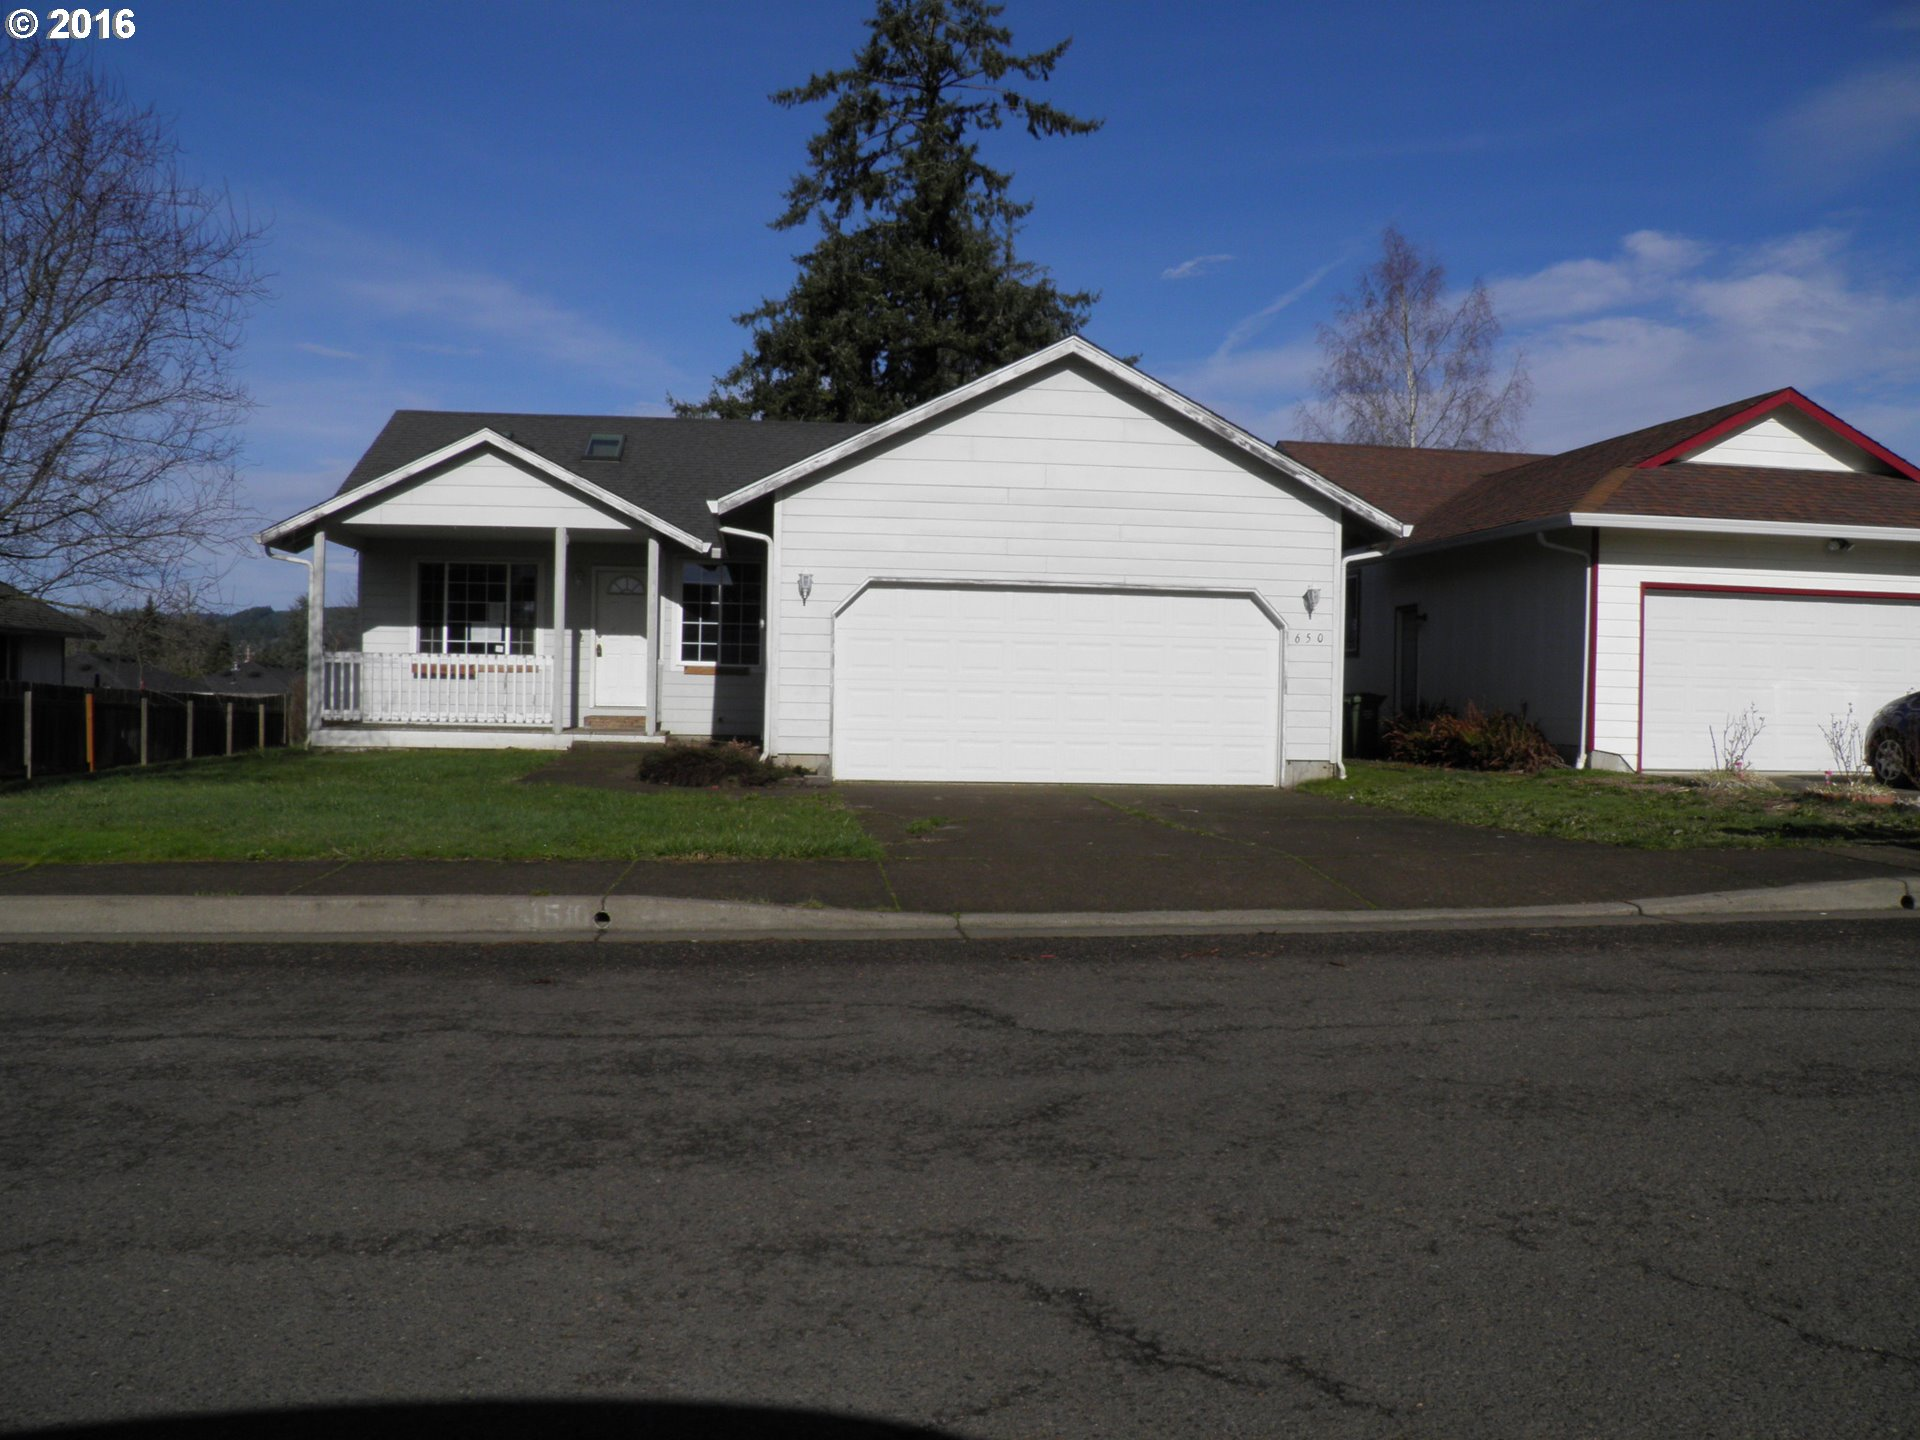 650 ARTHUR AVE, Cottage Grove OR 97424